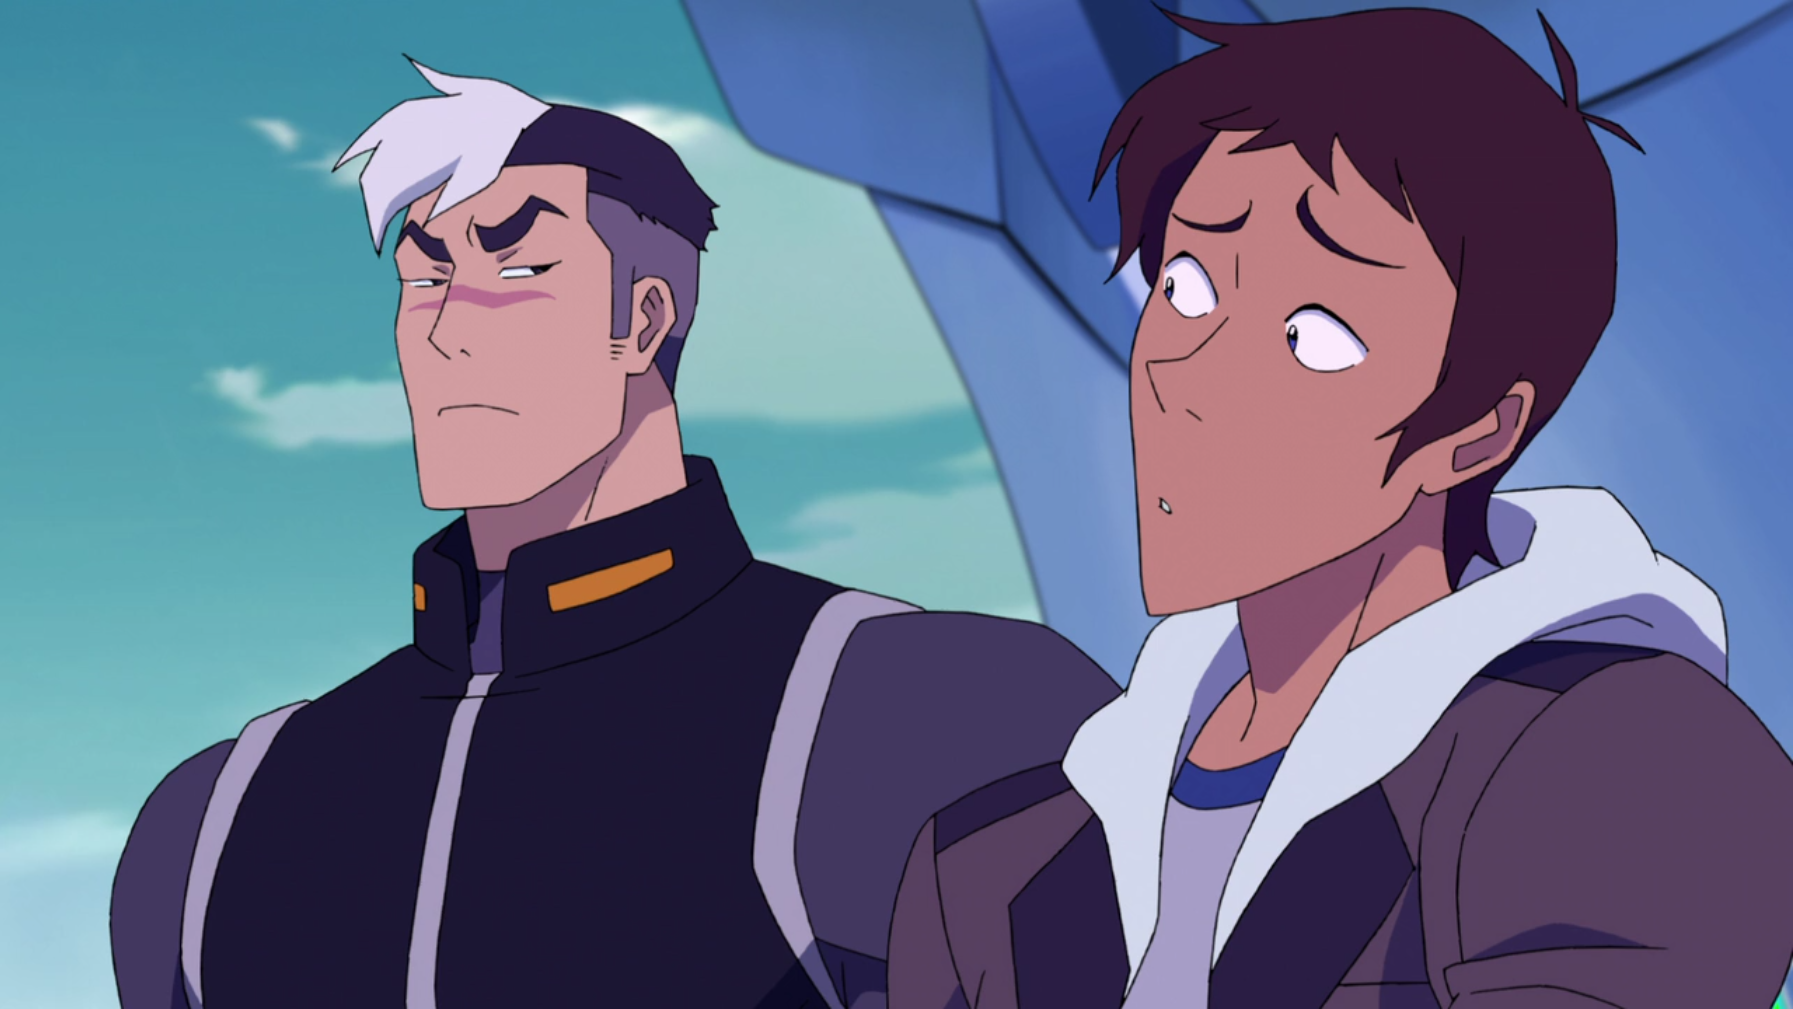 Shiro gives Lance the Team Dad glare